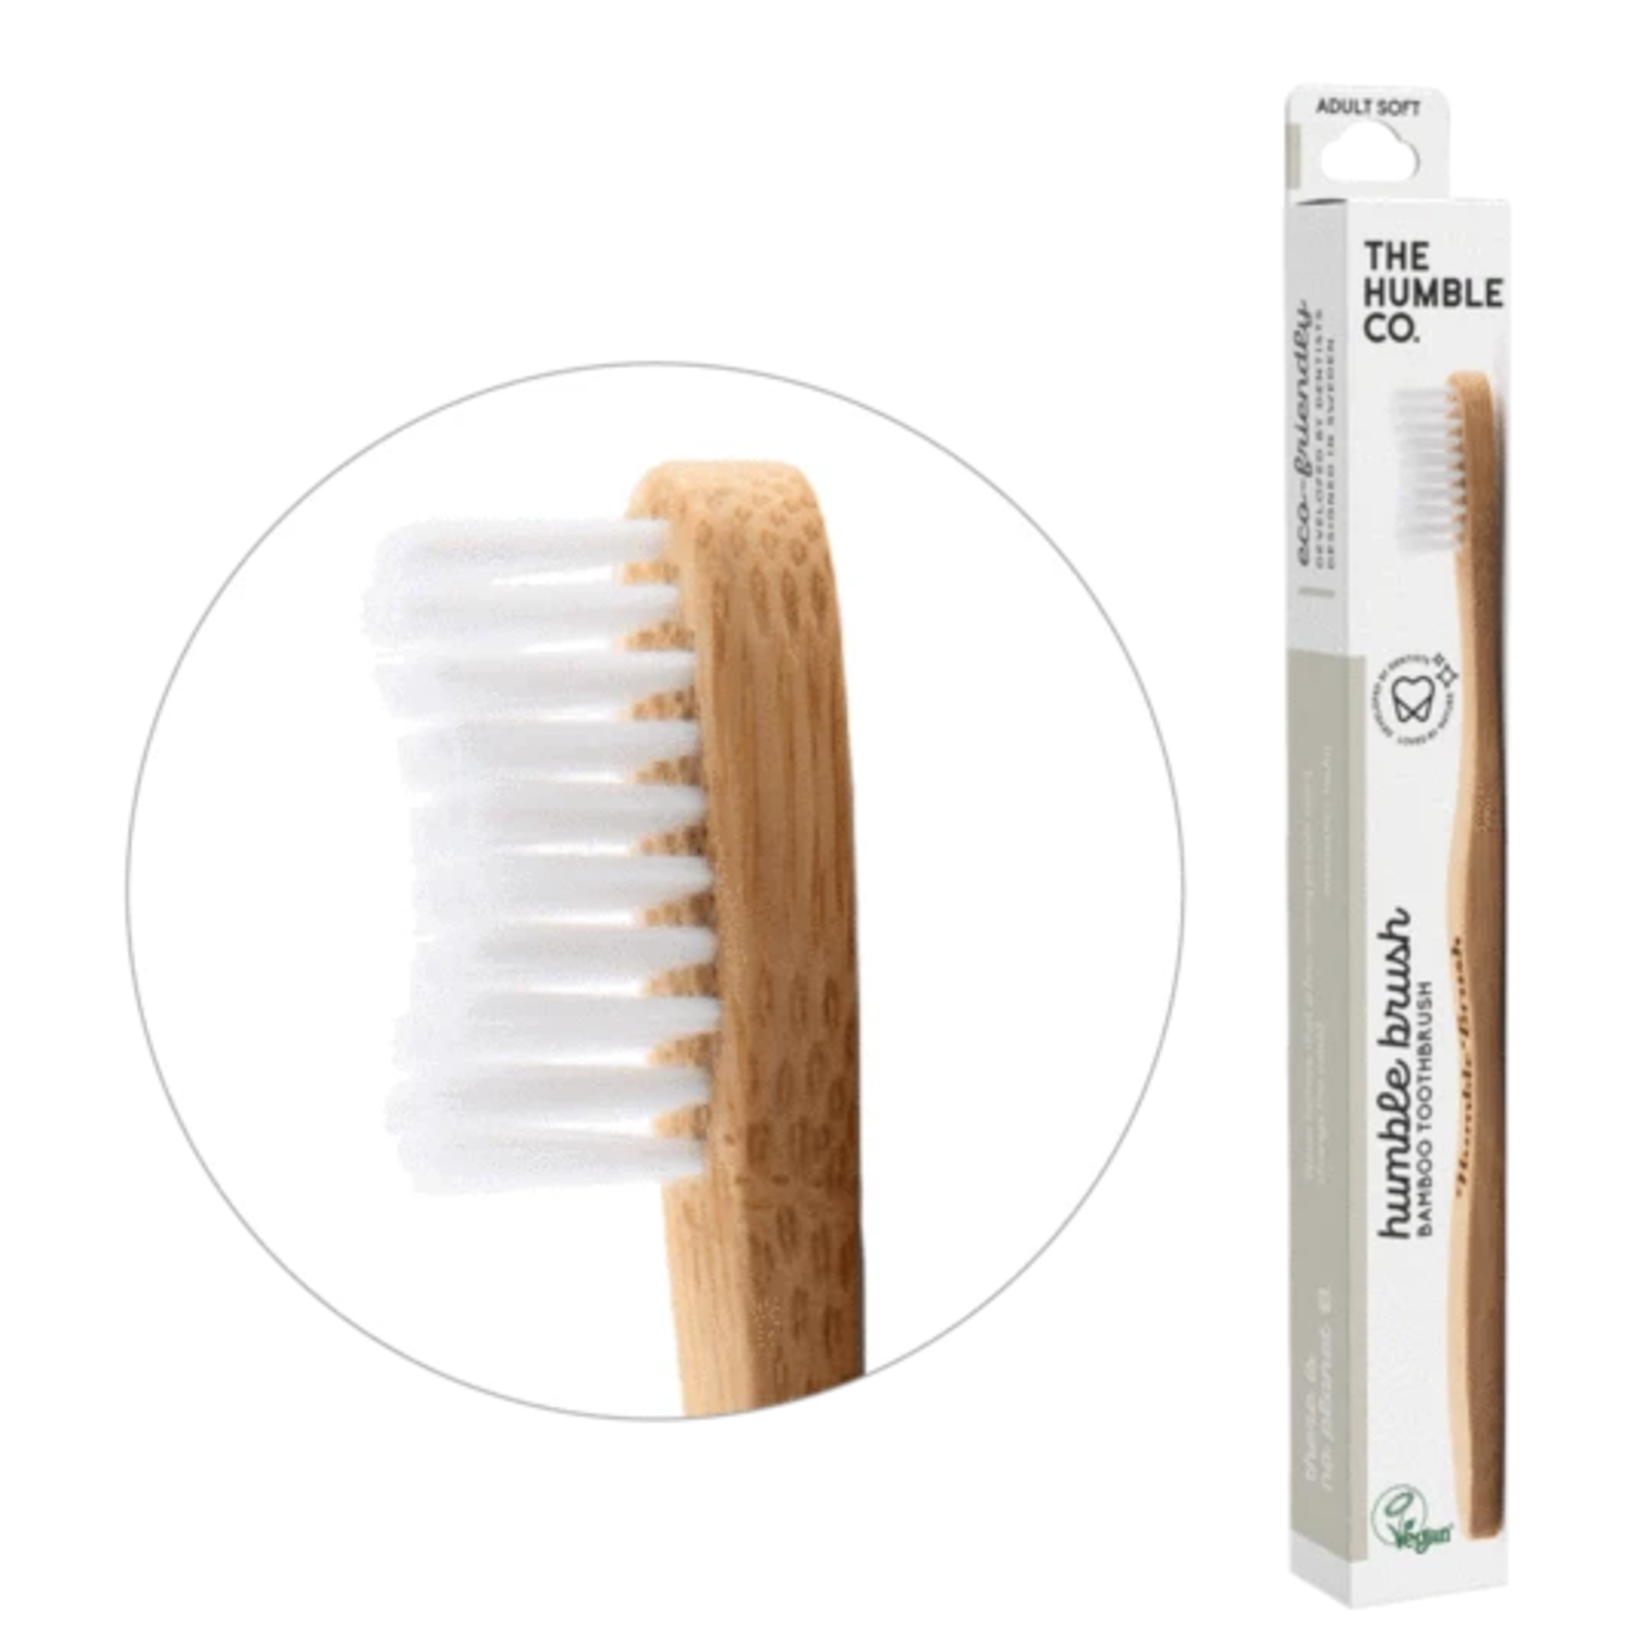 The Humble Co. The Humble Co. Toothbrush Adults